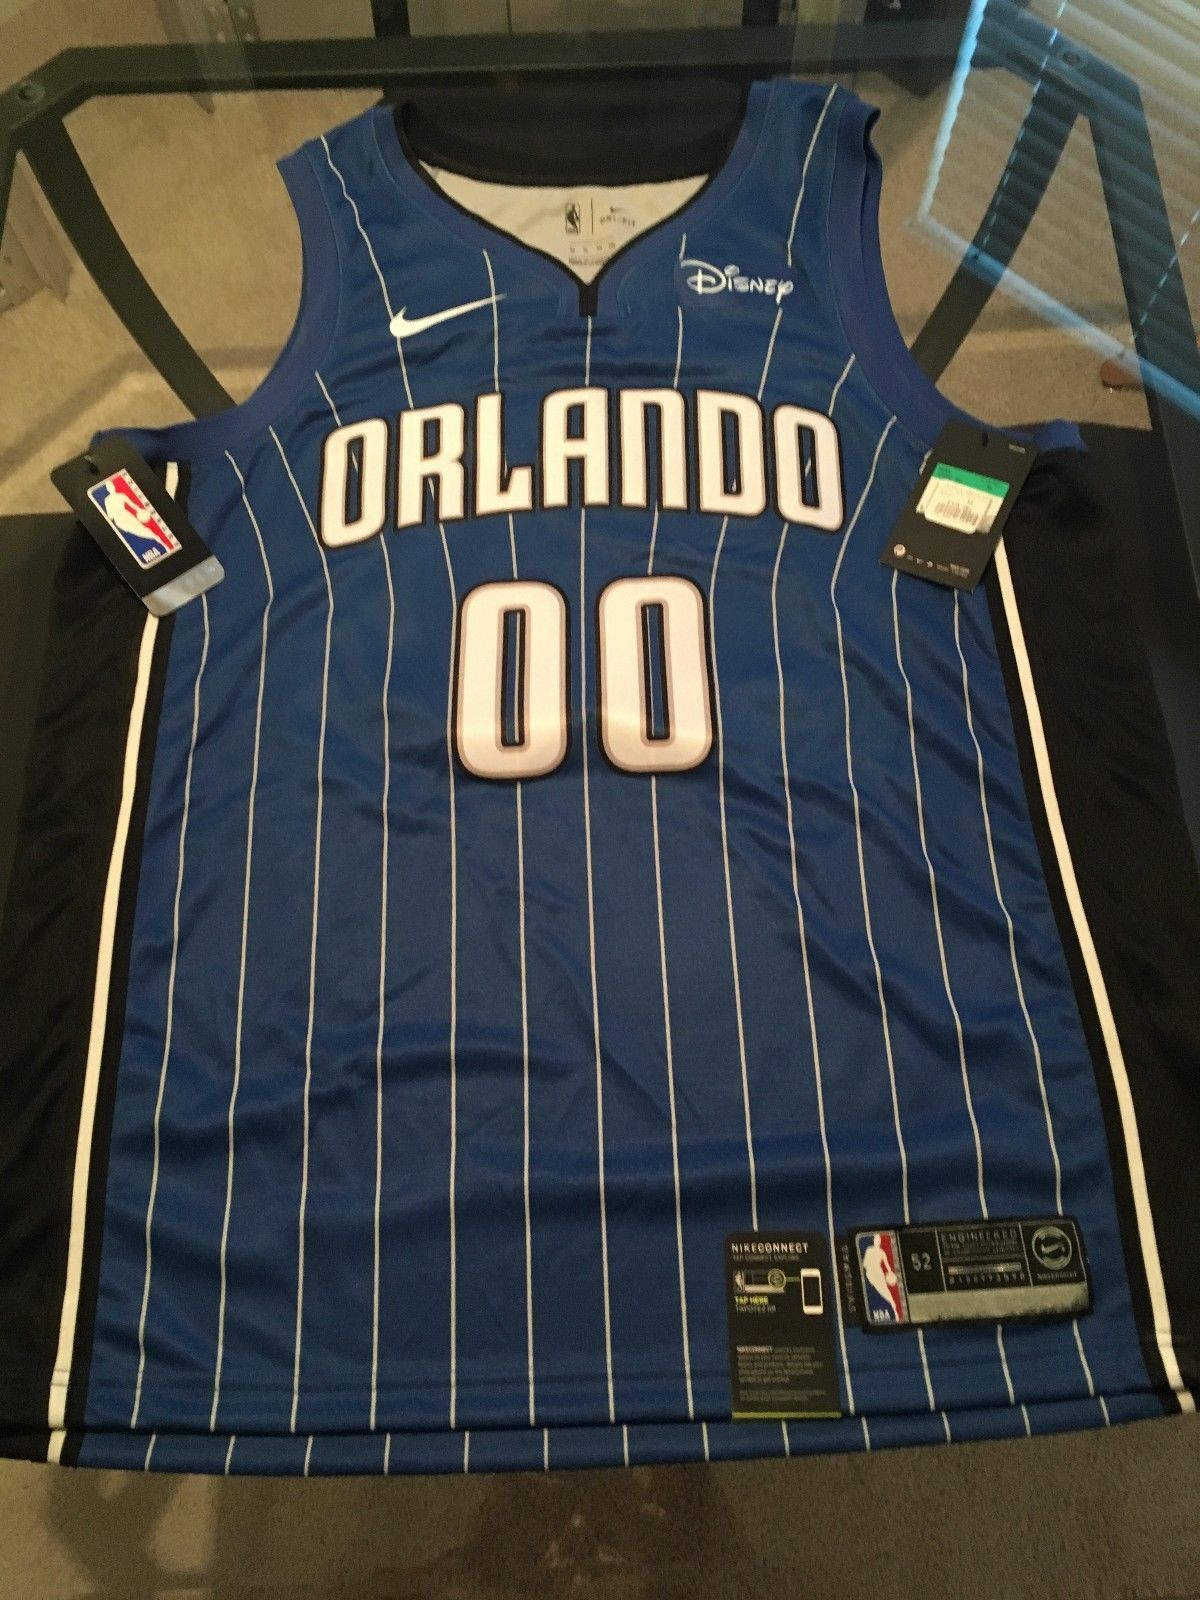 748cc5b96bb BRAND NEW AUTHENTIC Disney NIKE Orlando Magic JERSEY Aaron Gordon XL 52  (eBay Link)